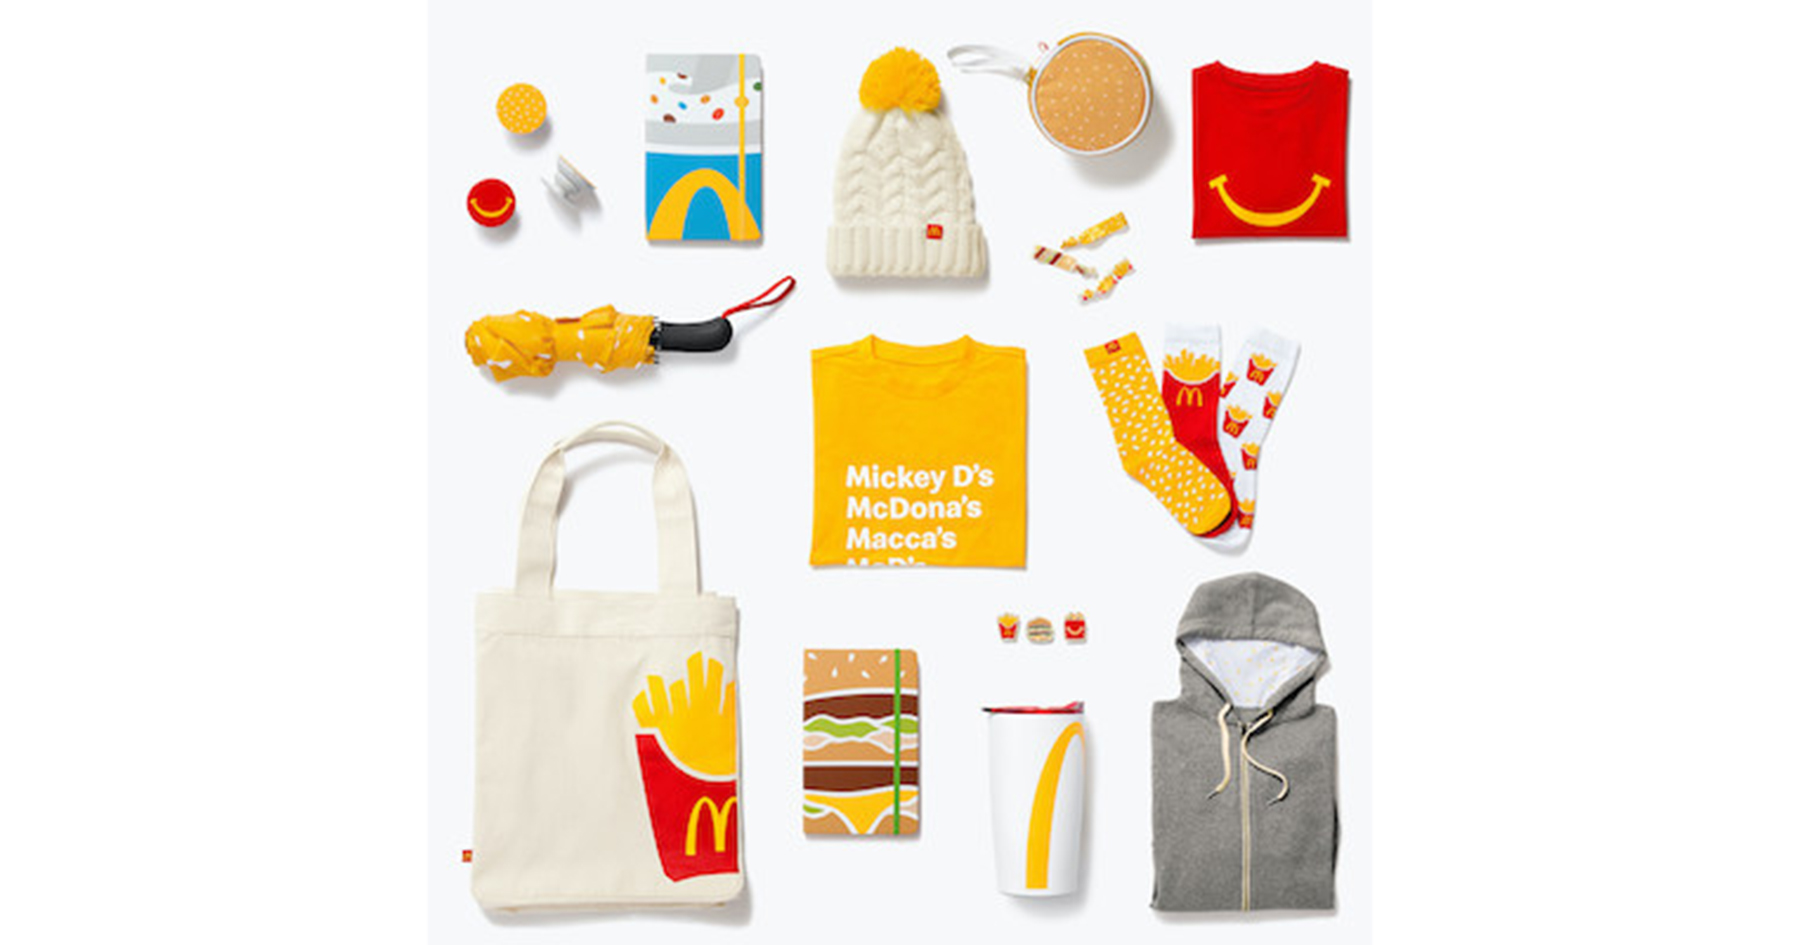 McDonald's merch